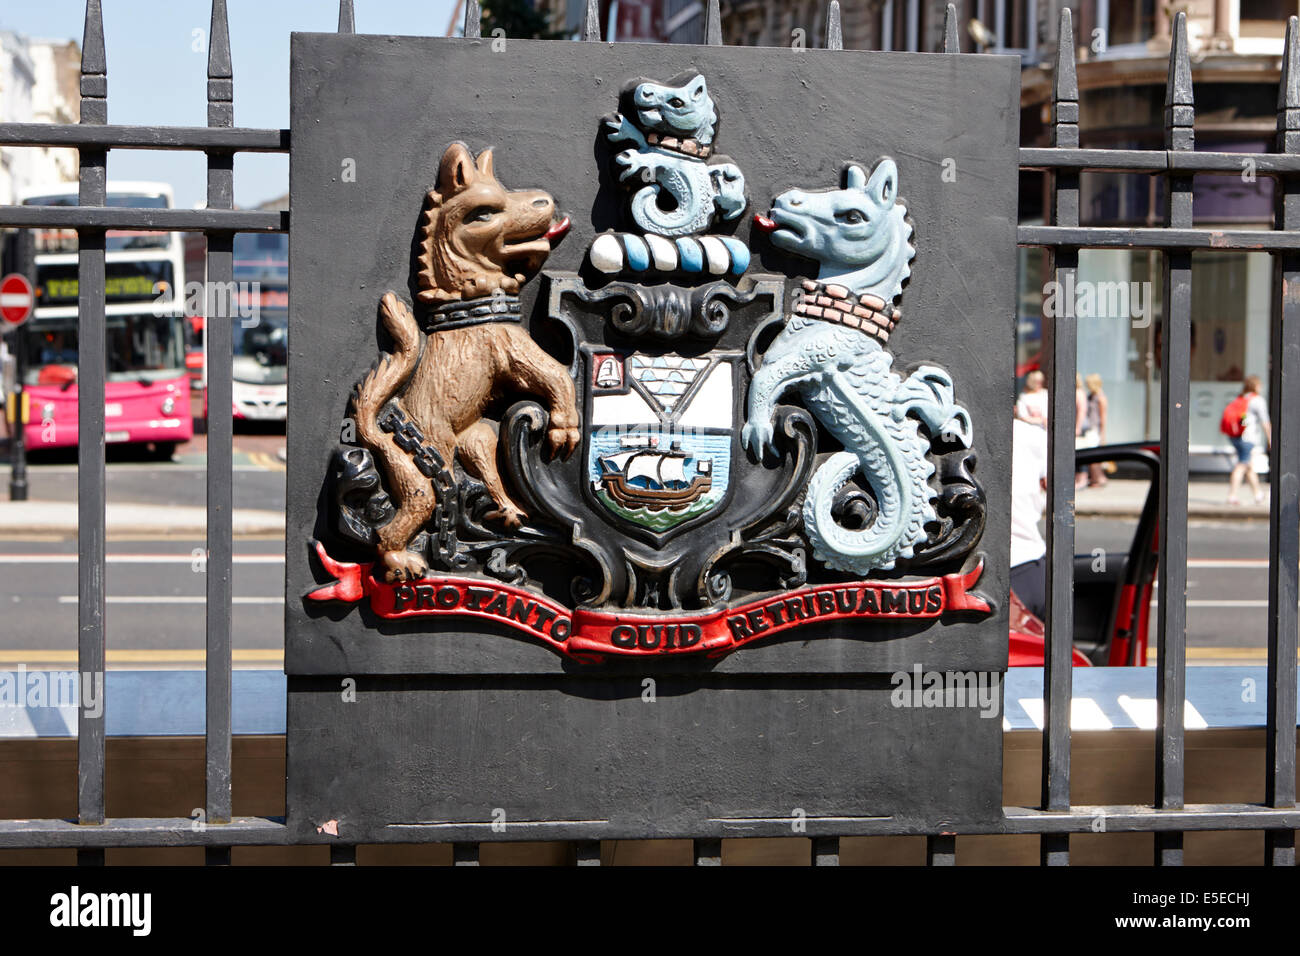 Belfast coat of arms in the city centre - Stock Image